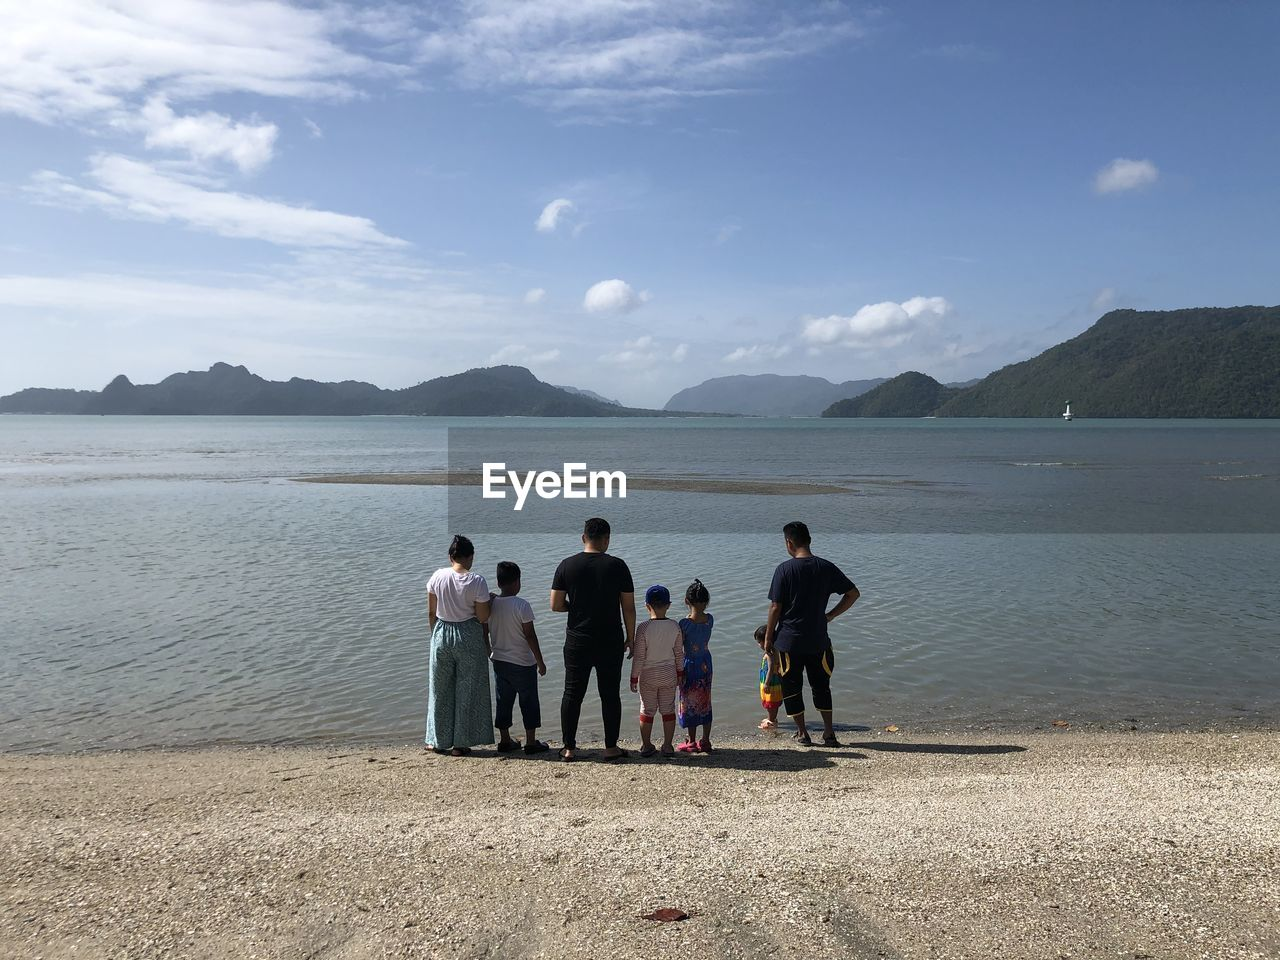 water, sky, group of people, real people, mountain, beauty in nature, men, sea, women, scenics - nature, beach, nature, land, leisure activity, lifestyles, togetherness, people, full length, adult, outdoors